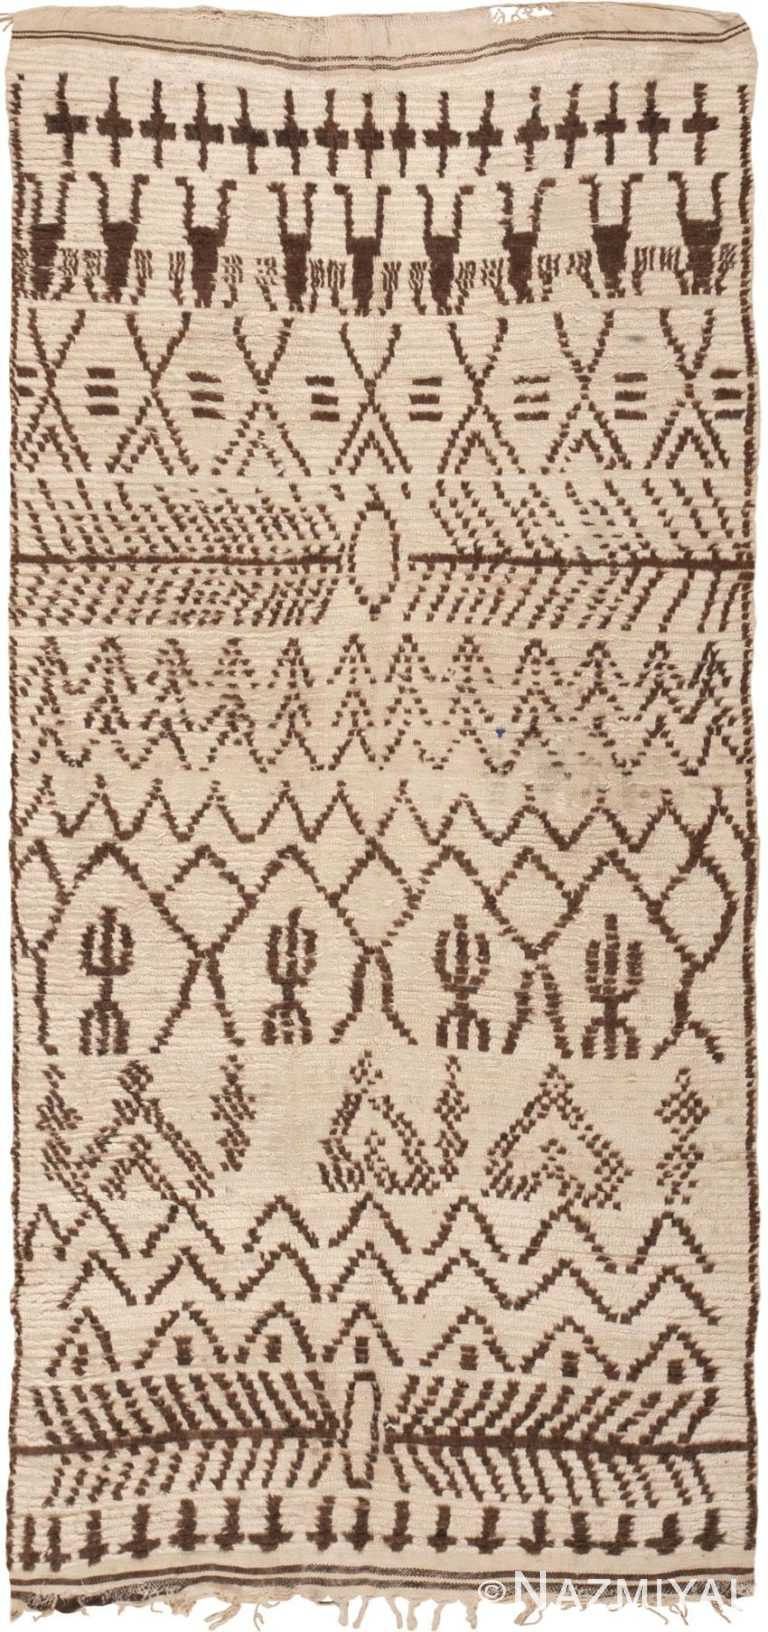 Tribal Vintage Moroccan Beni Ourain Area Rug #46042 by Nazmiyal Antique Rugs